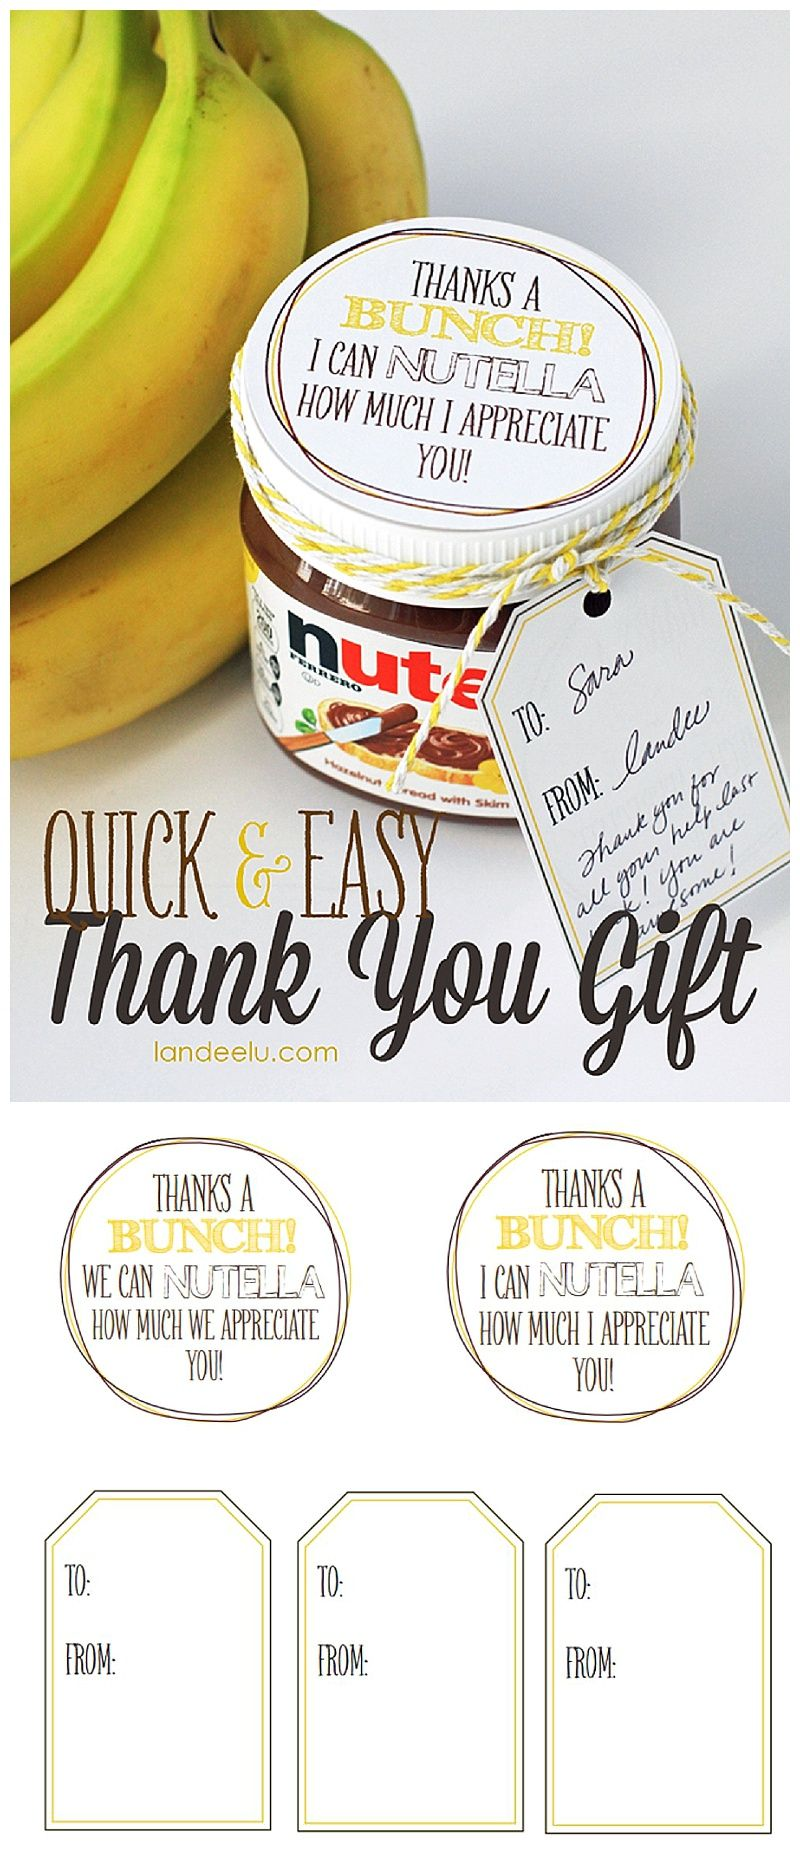 Easy Thank You Gift Idea: Bananas And Nutella!